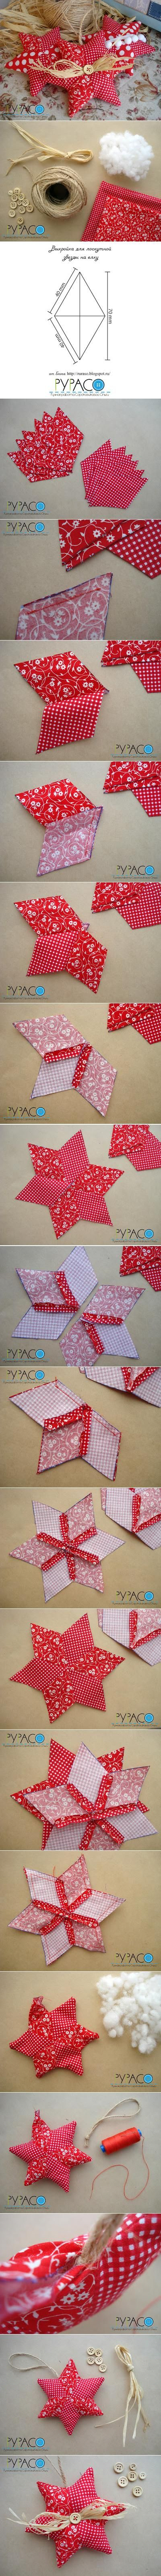 DIY Little Fabric Star